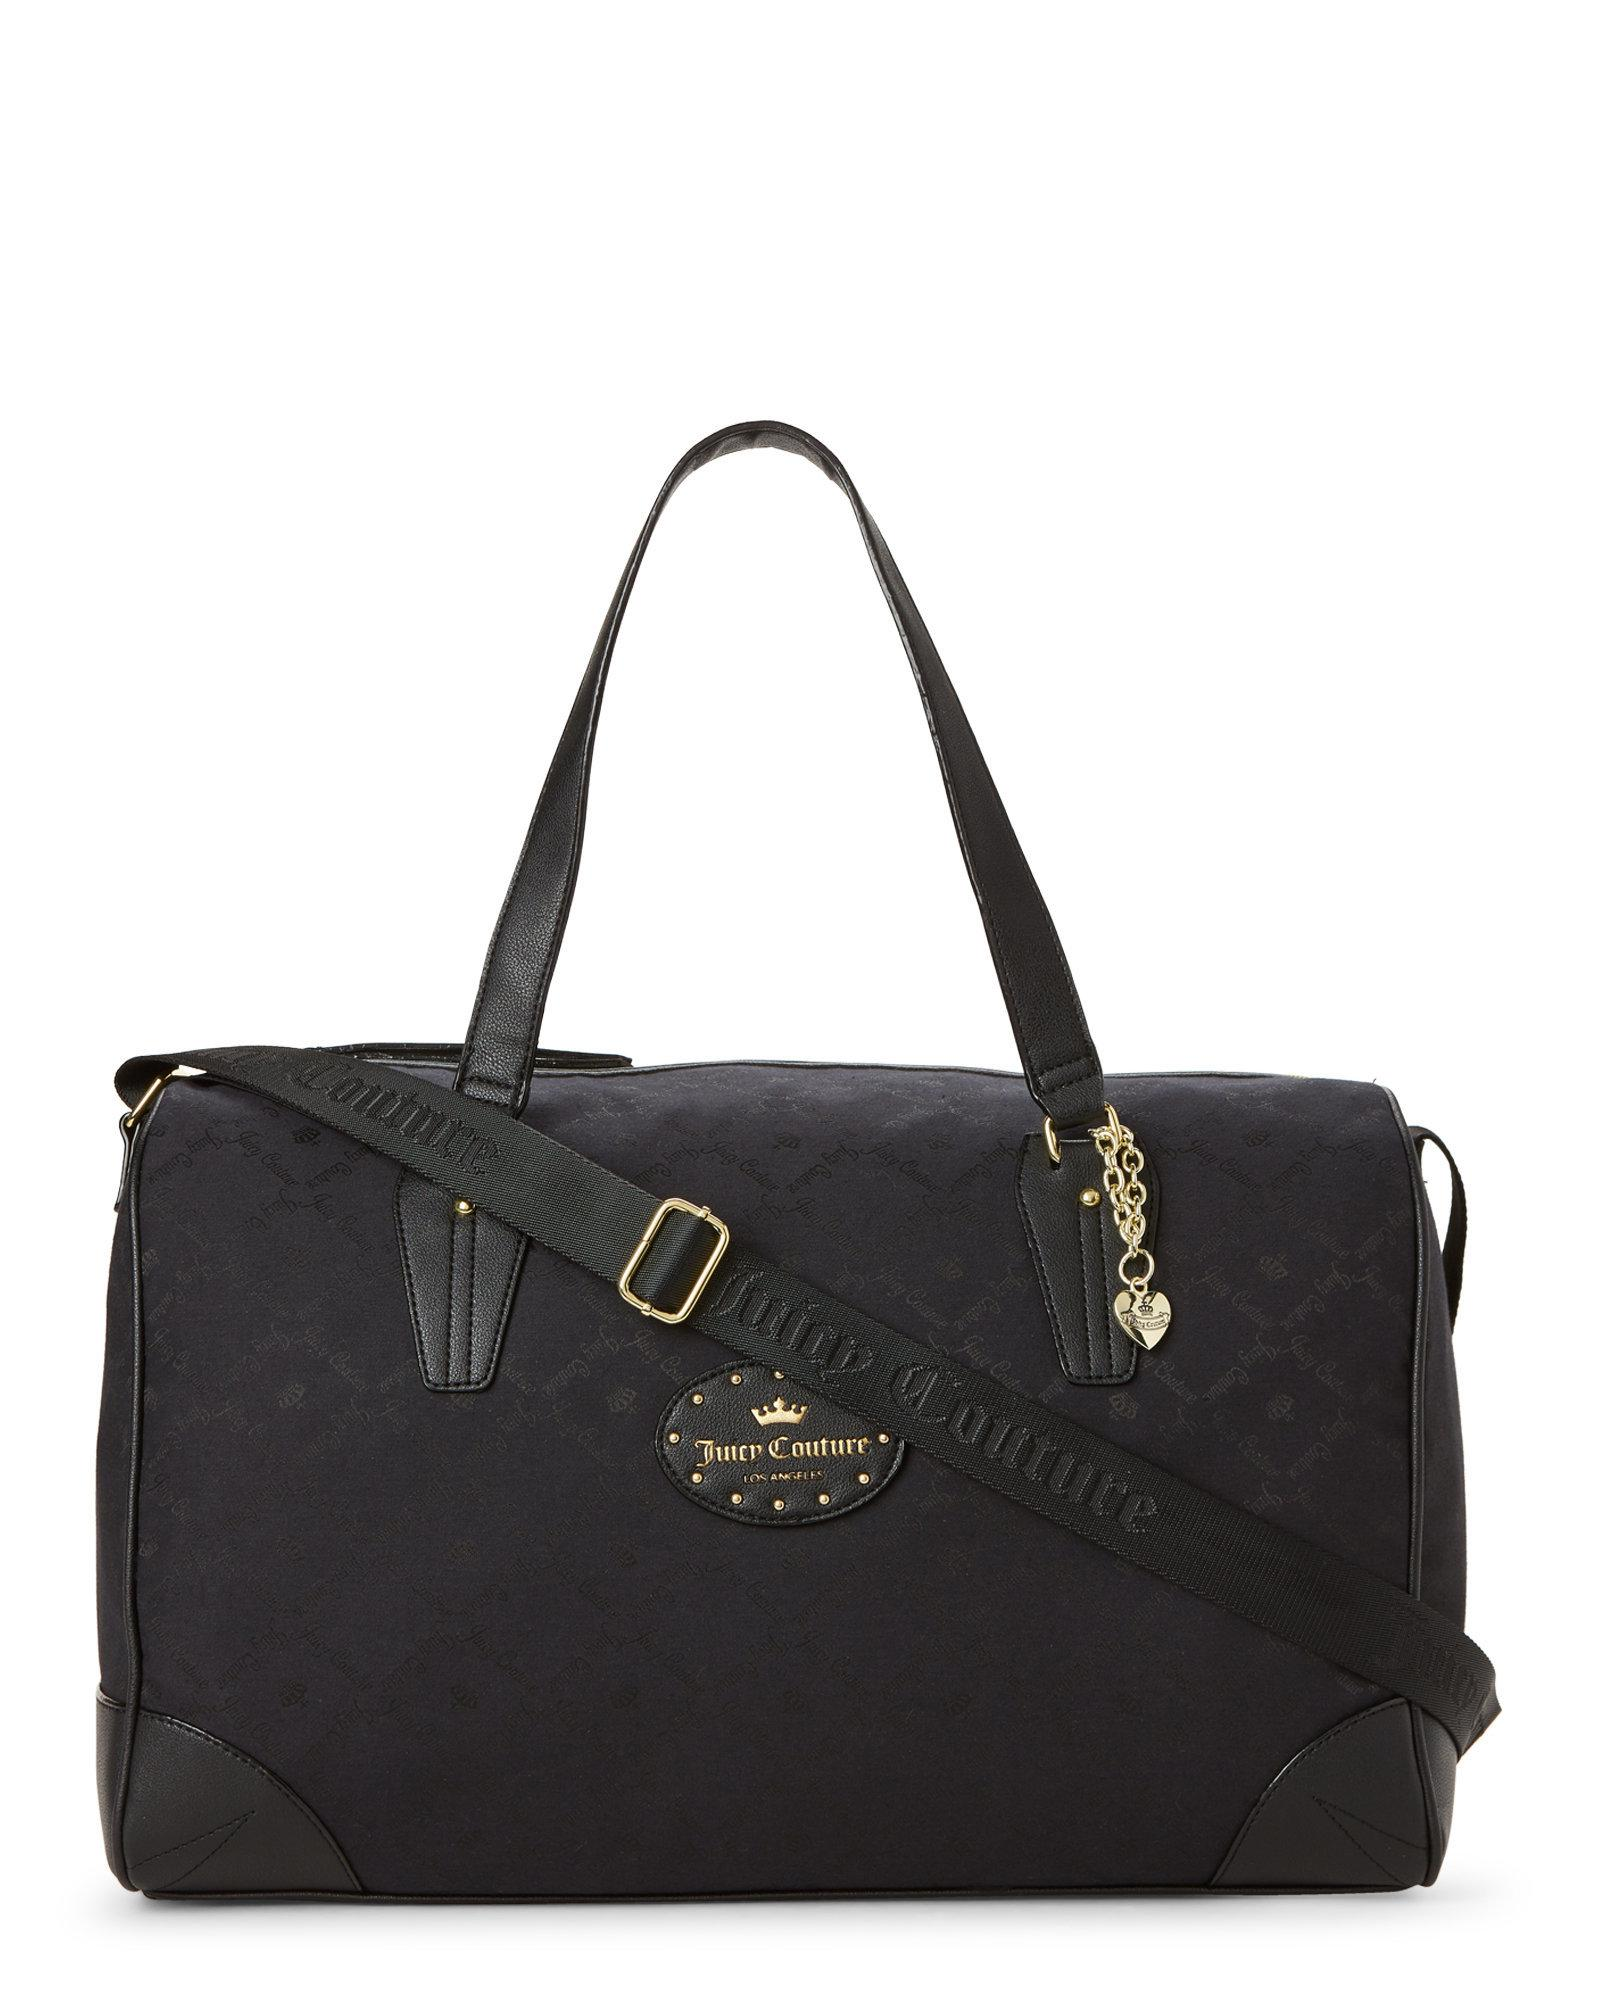 Lyst - Juicy Couture Black Yours Truly Weekender in Black cd79ff89d154